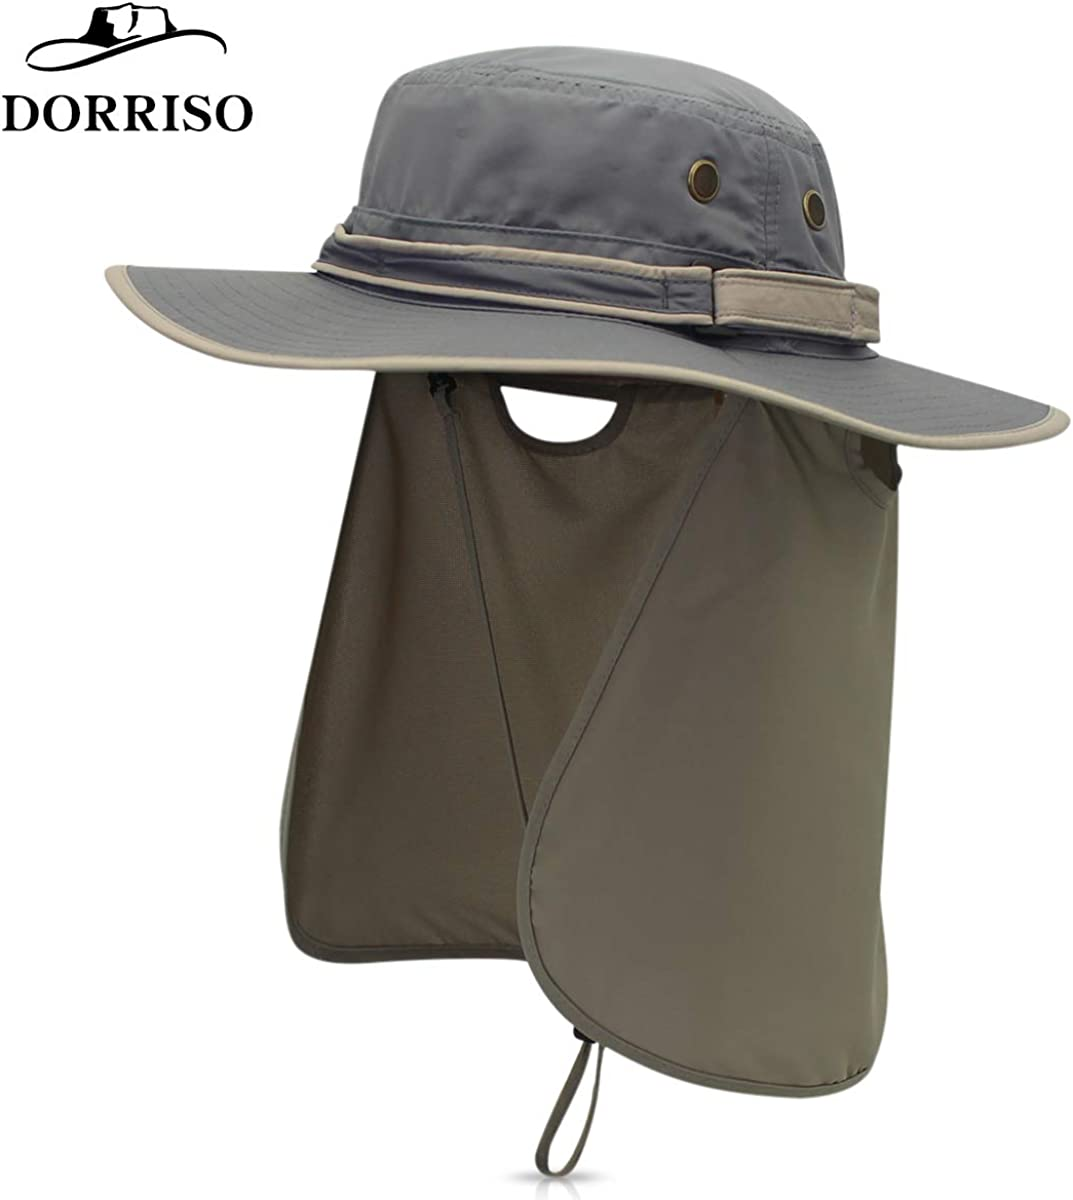 DORRISO Sun Hat Unisex Wide Brimmed Bucket Hat UV Protection Bush Hat Foldable Vacation Traveling Safari Boonie Hat Waterproof Polyester Fisherman Cap